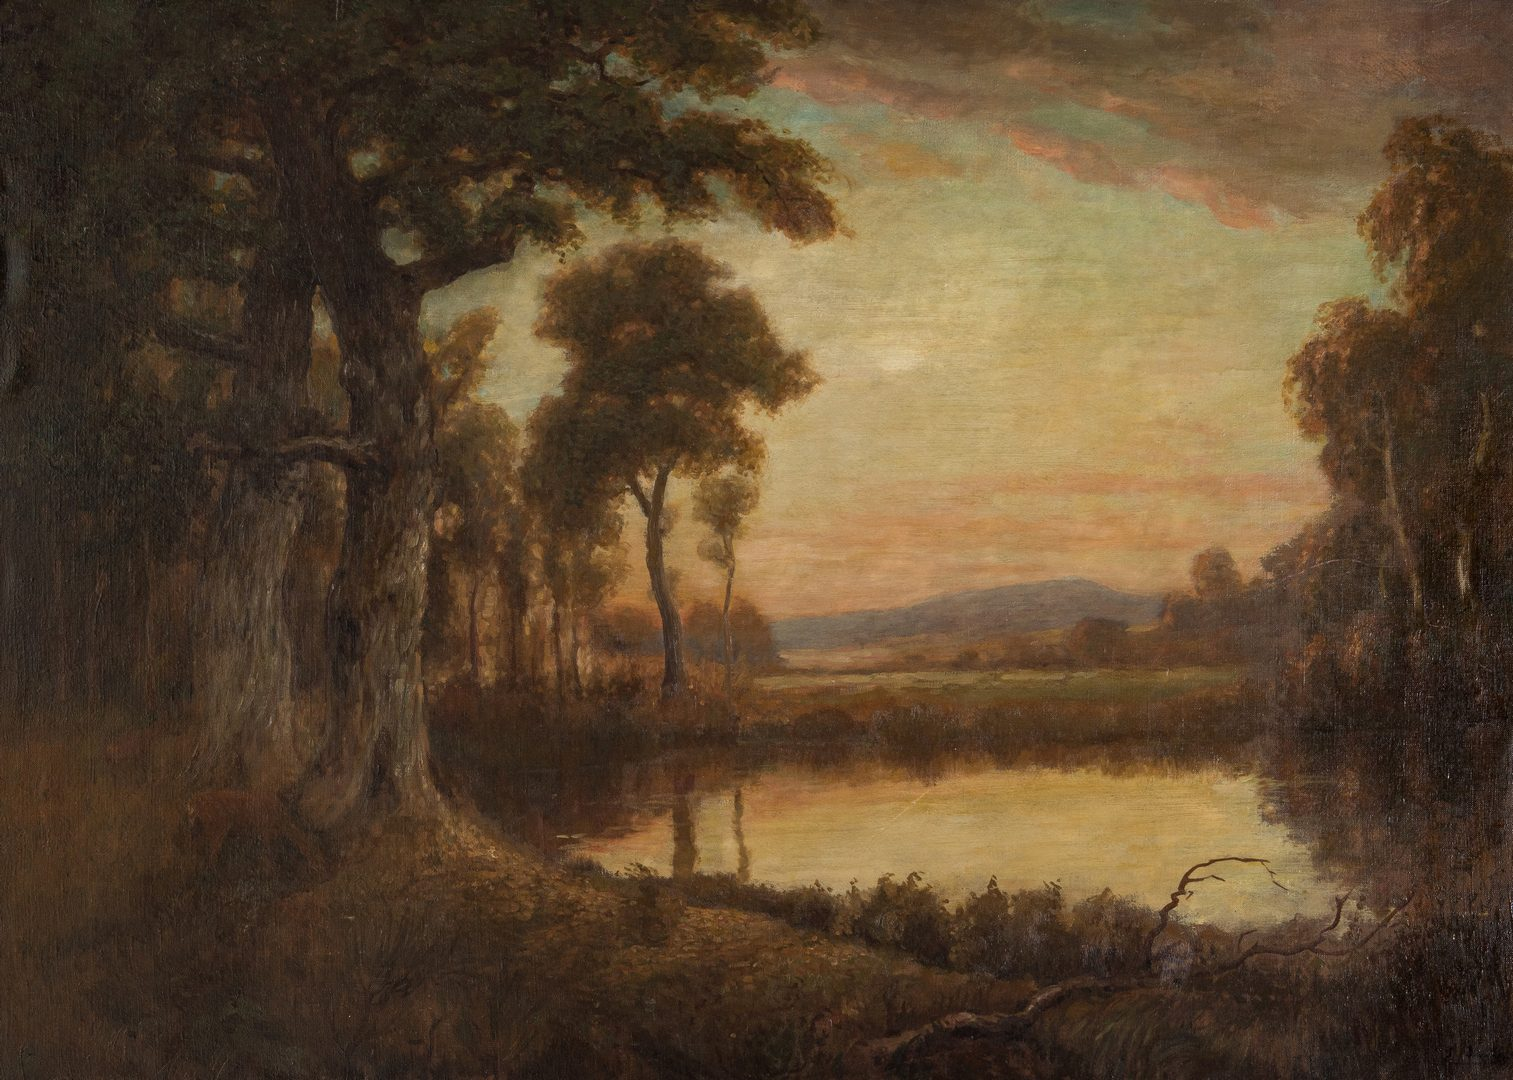 Lot 100: American School O/C, Deer at Pond Landscape